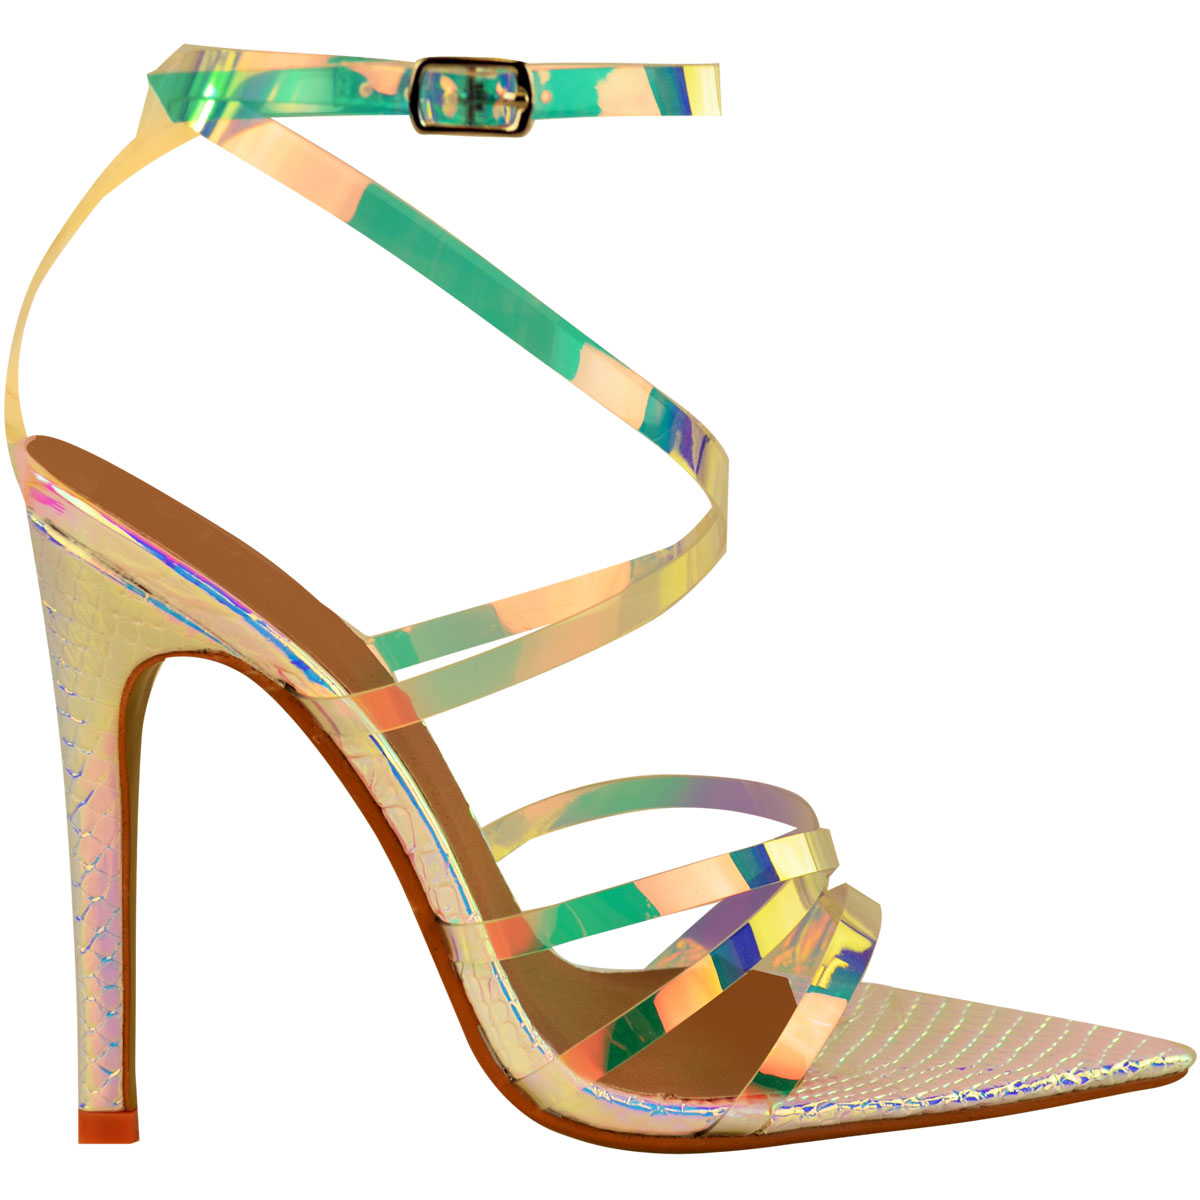 Womens-Silver-Hologram-Perspex-High-Heel-Party-Sandals-Barely-There-Strappy thumbnail 7